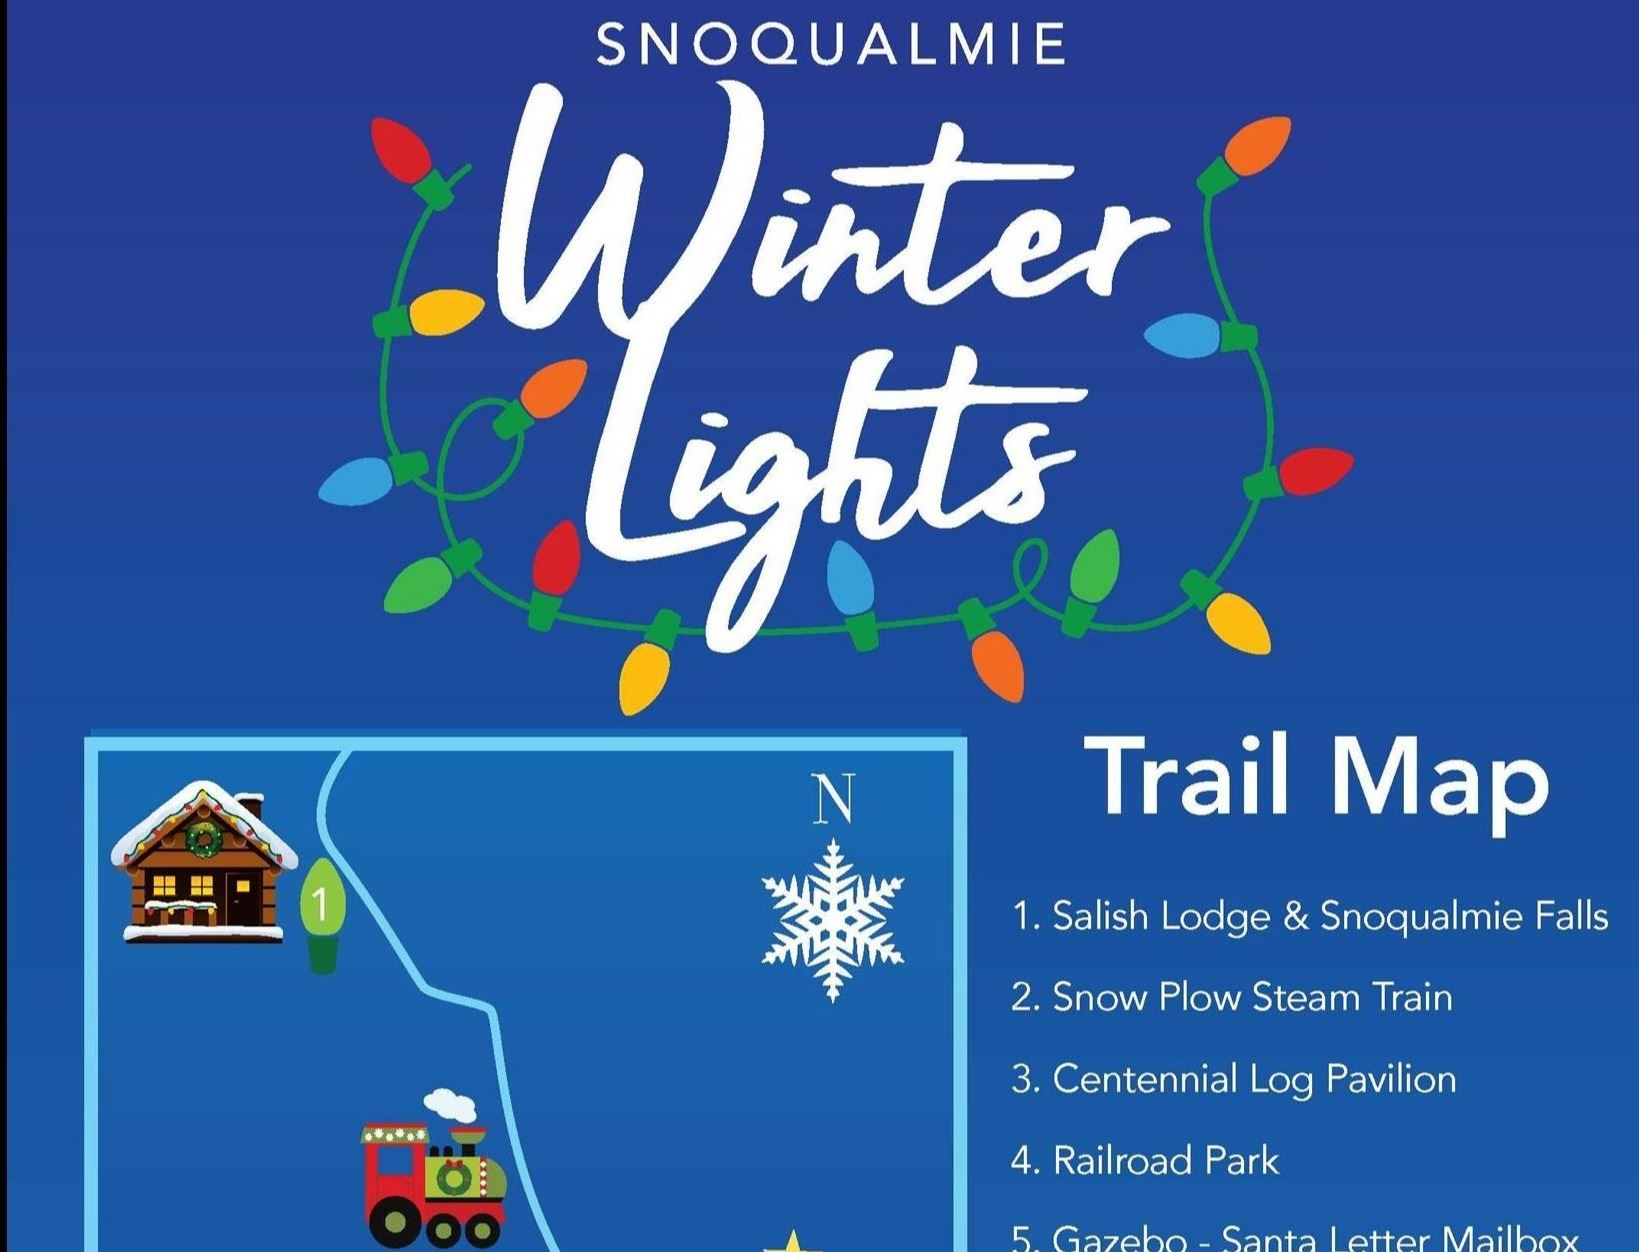 2019 Snoqualmie Winter Lights Trail Map